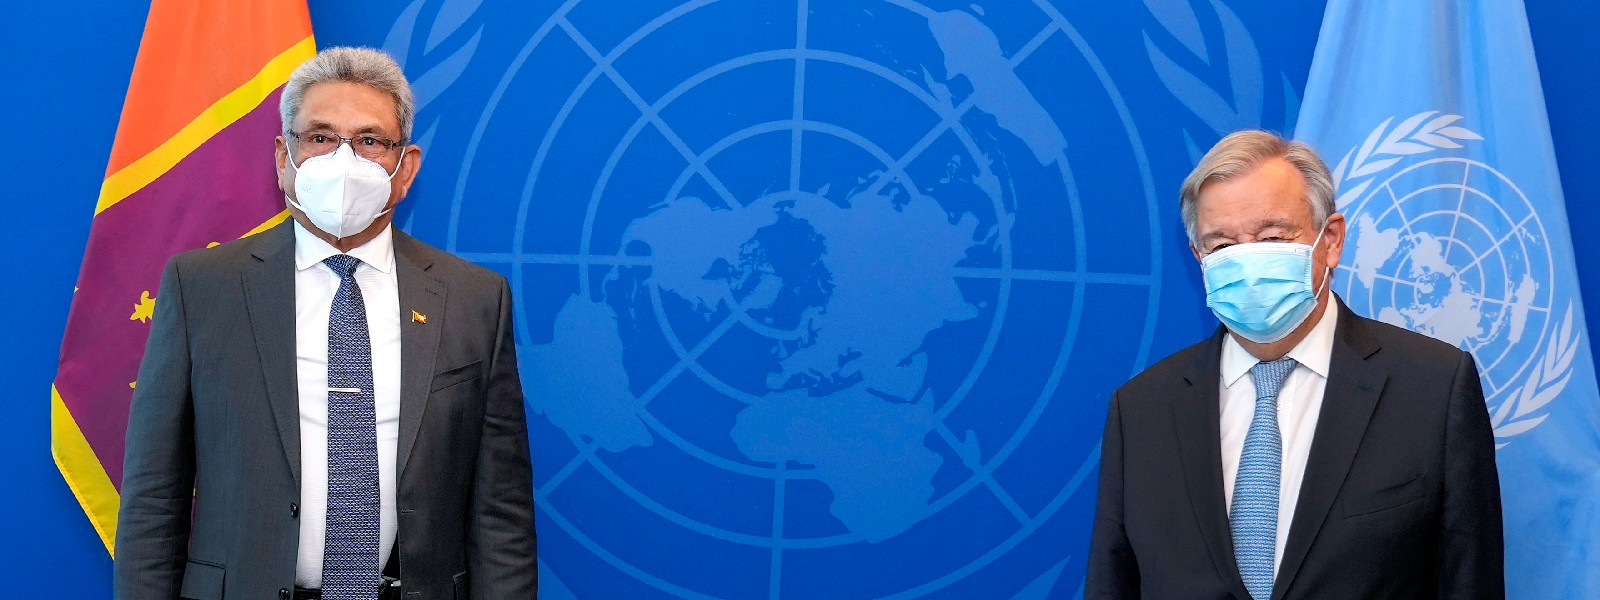 UN Secretary-General assures positive support to SL – PMD